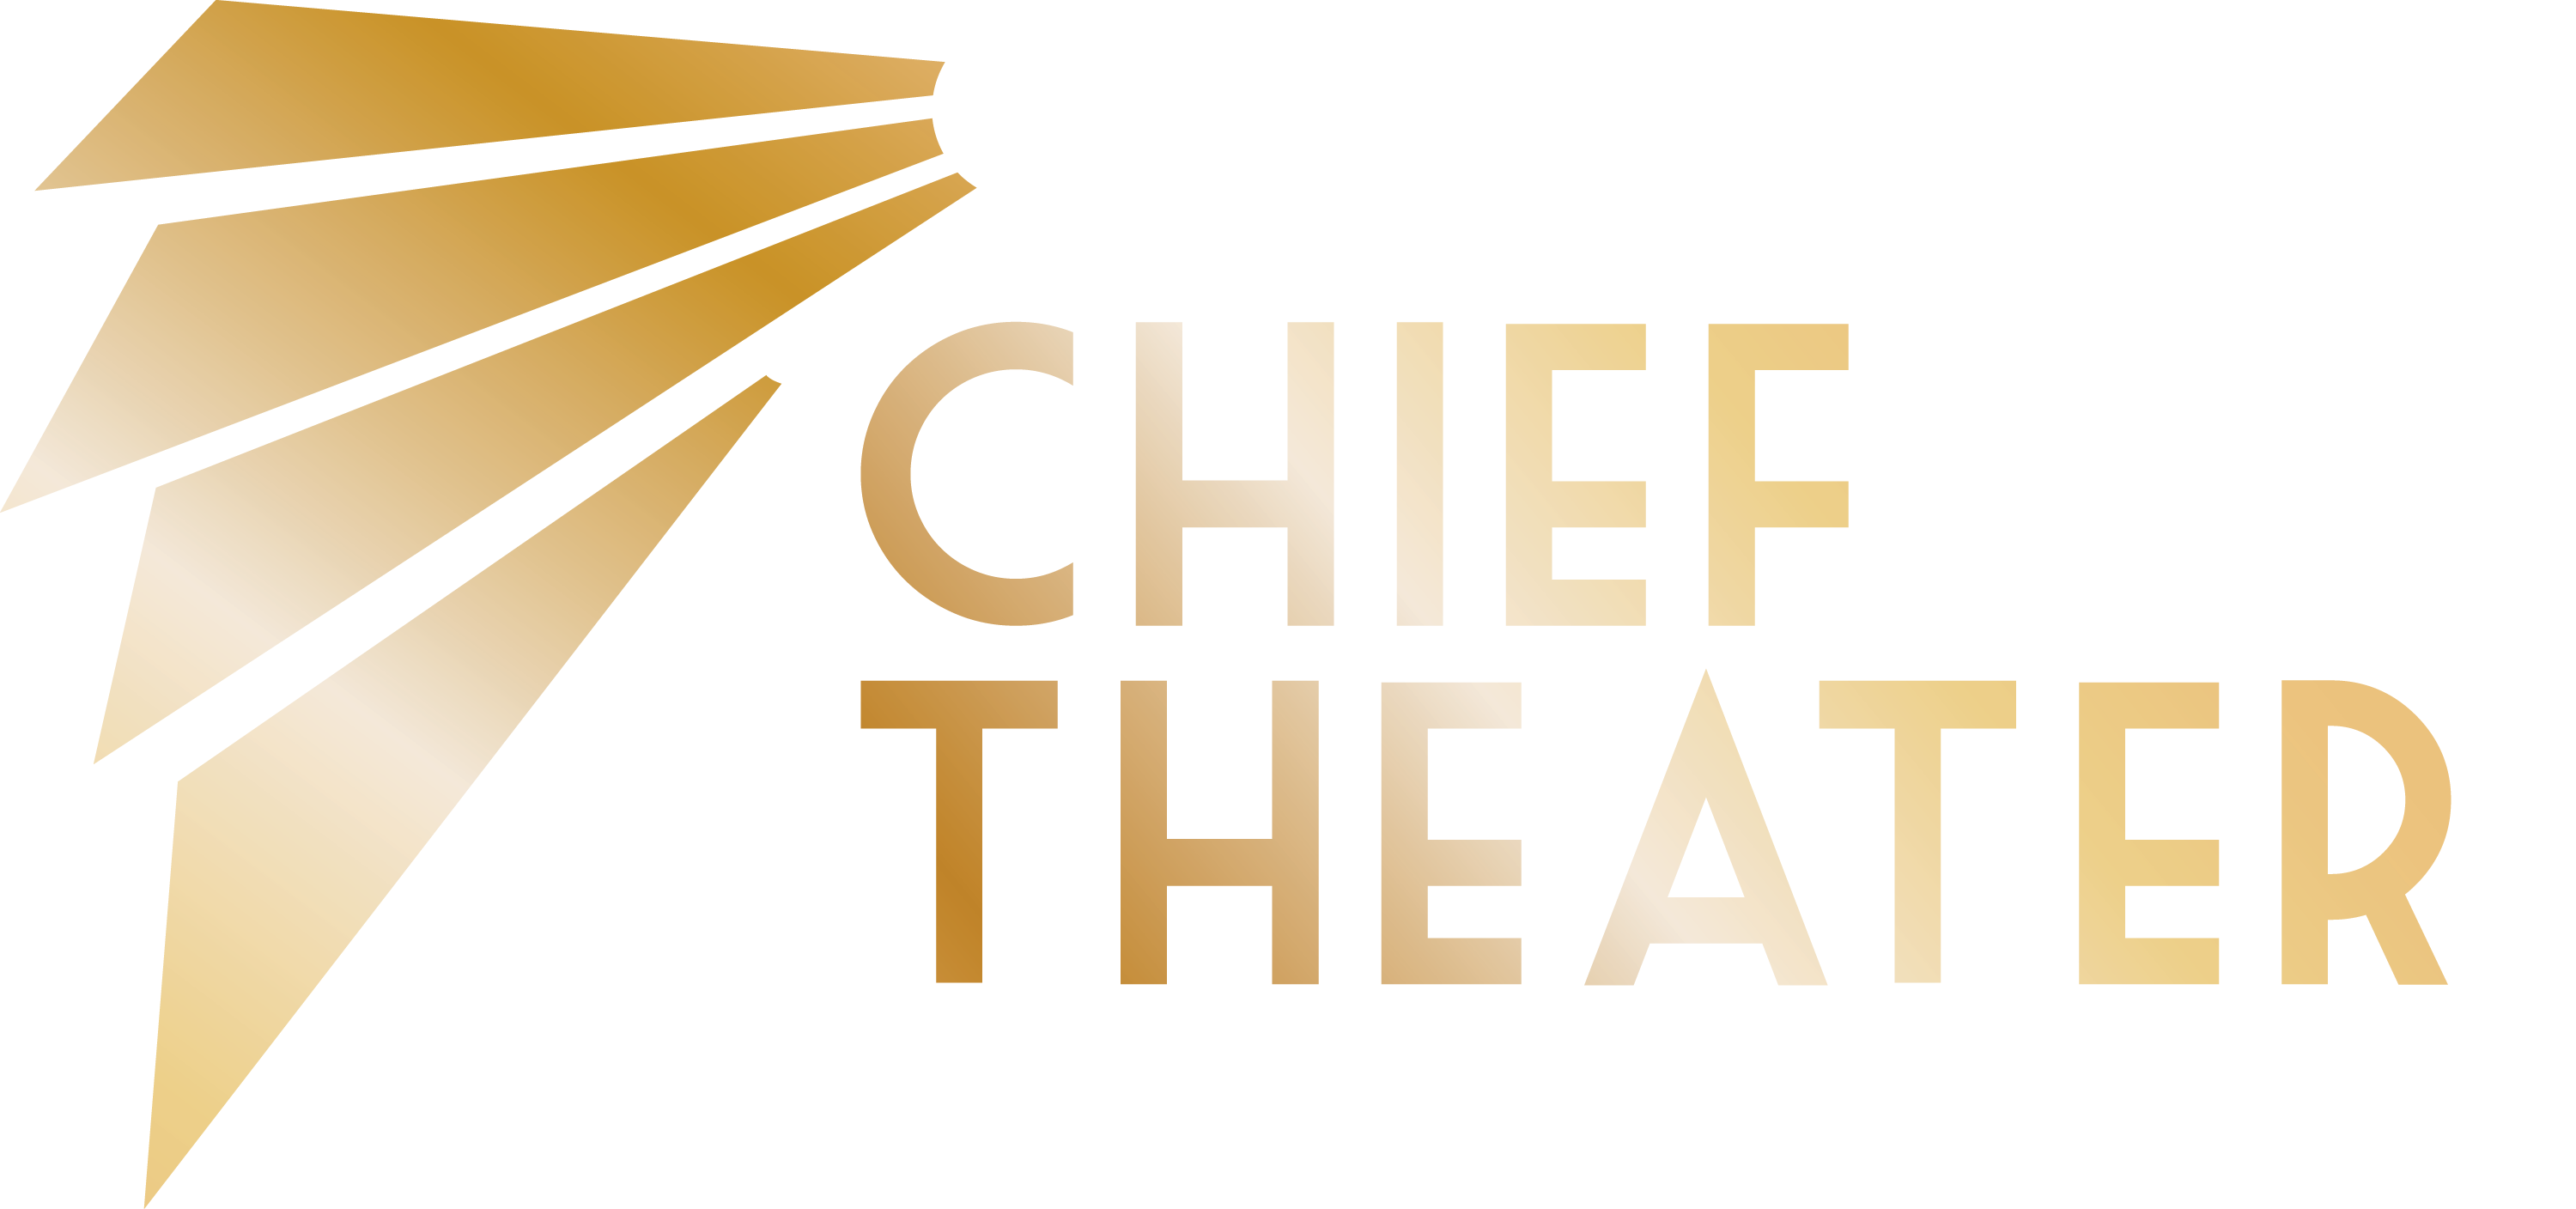 Find tickets from The Chief Theater